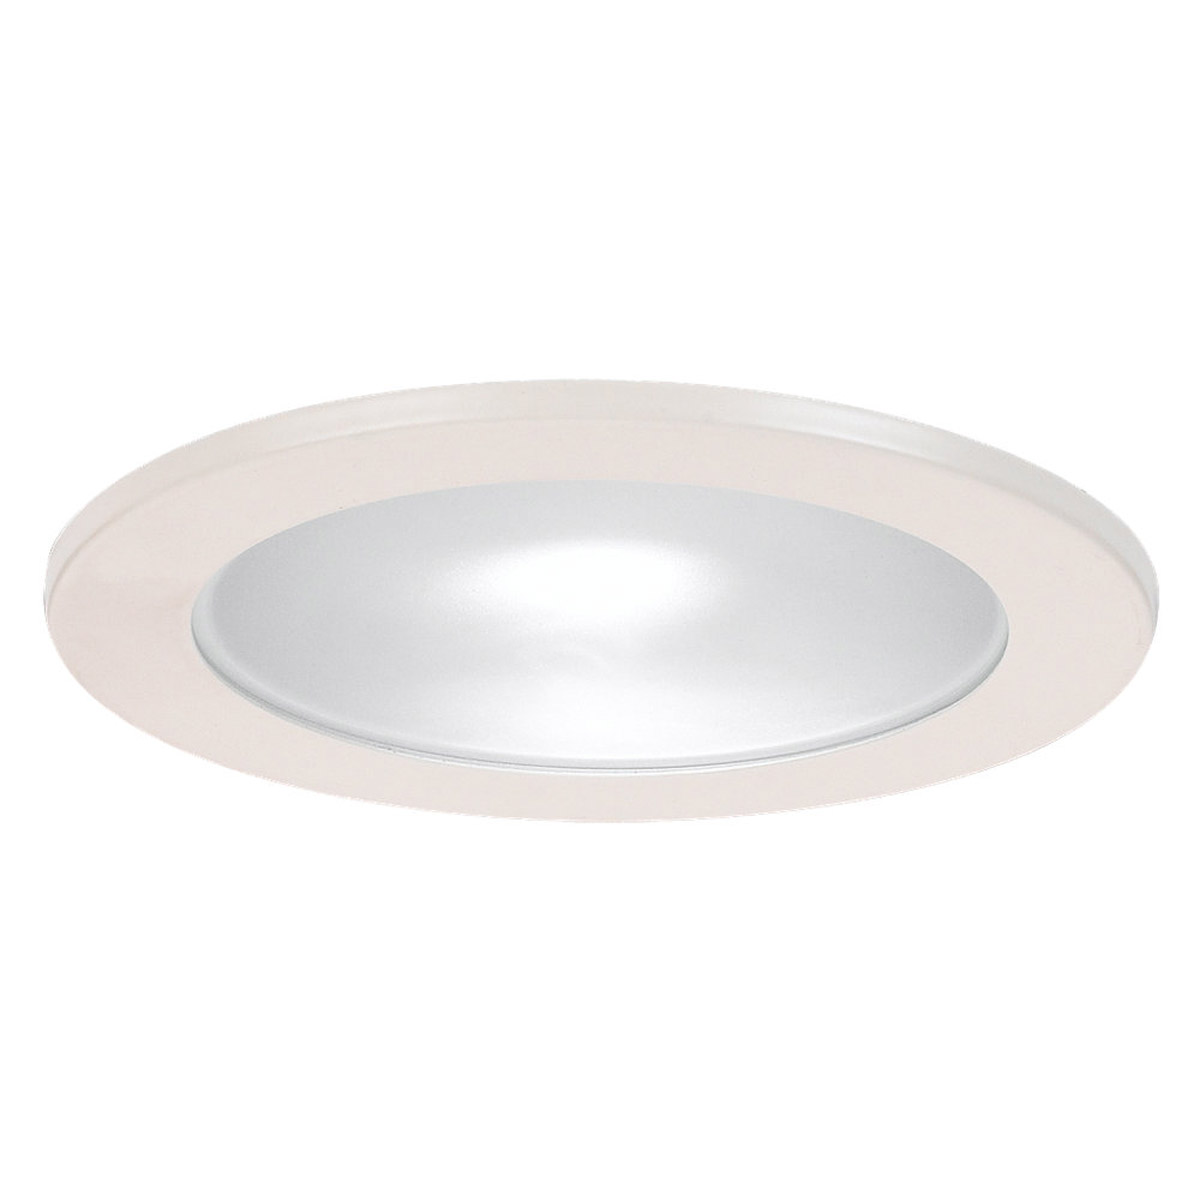 Sea Gull Lighting Signature Recessed Trim Only in White 1152AT-15